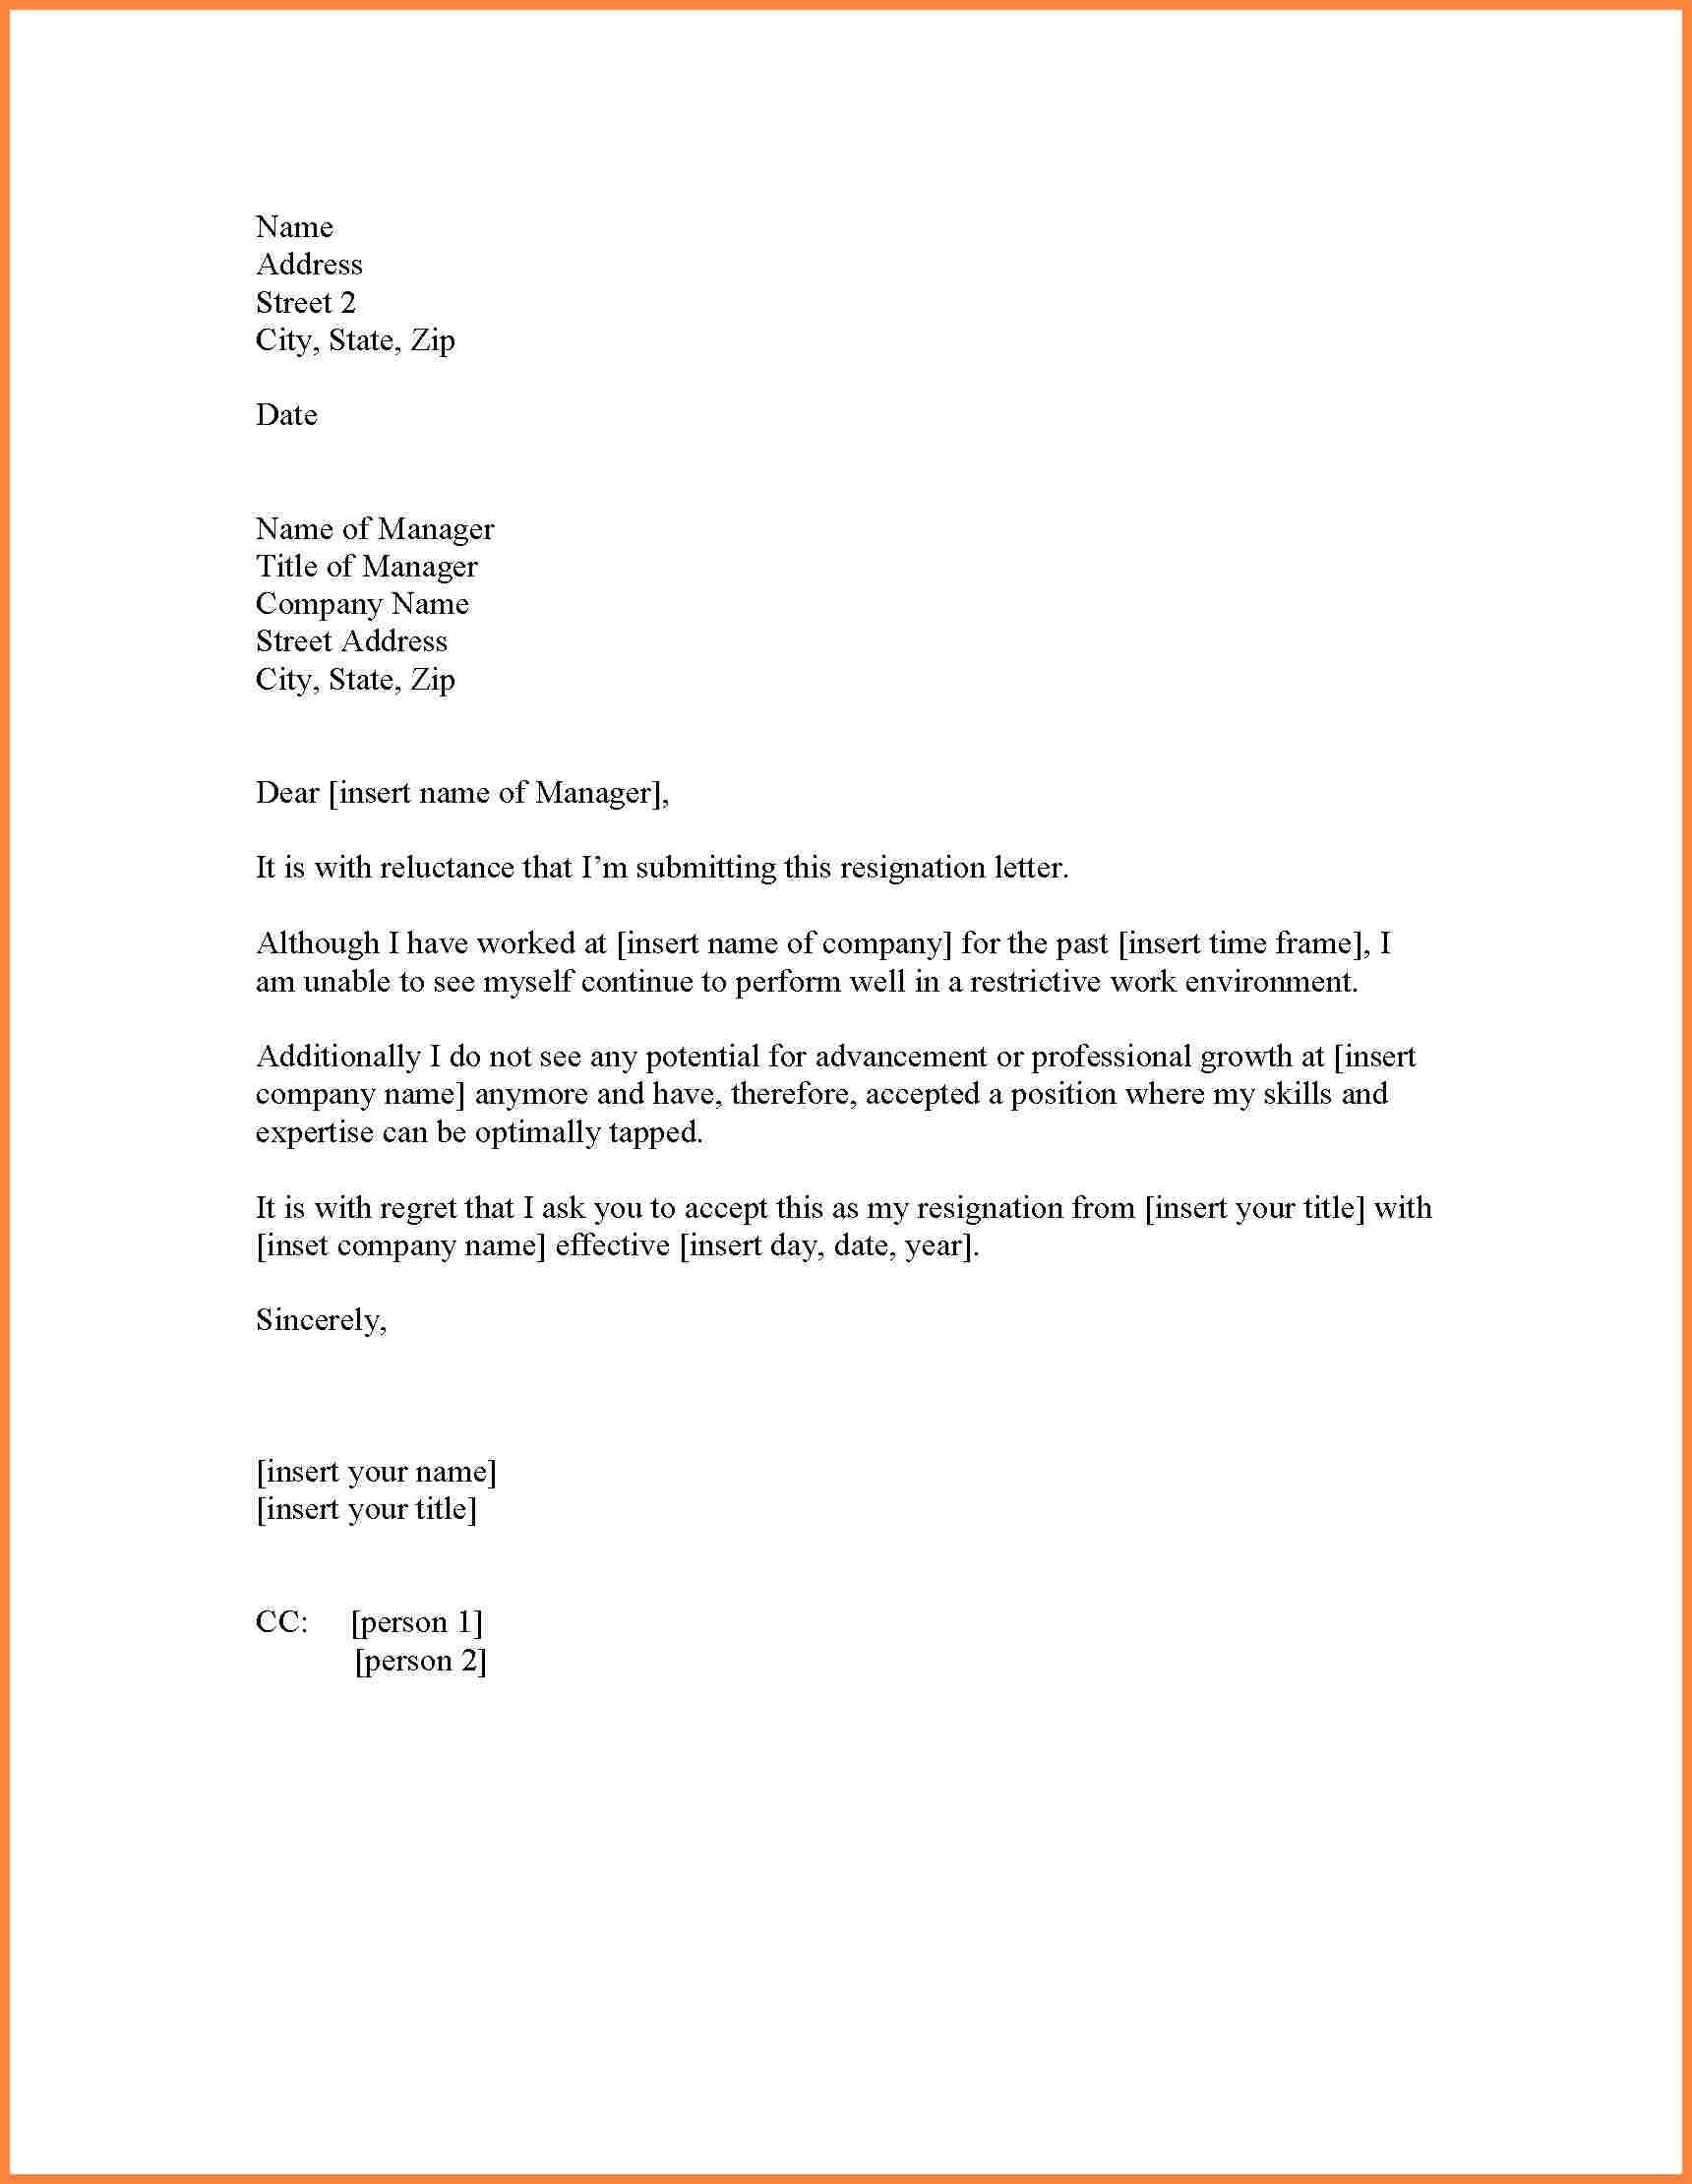 Copy Of Resignation Letter | scrumps